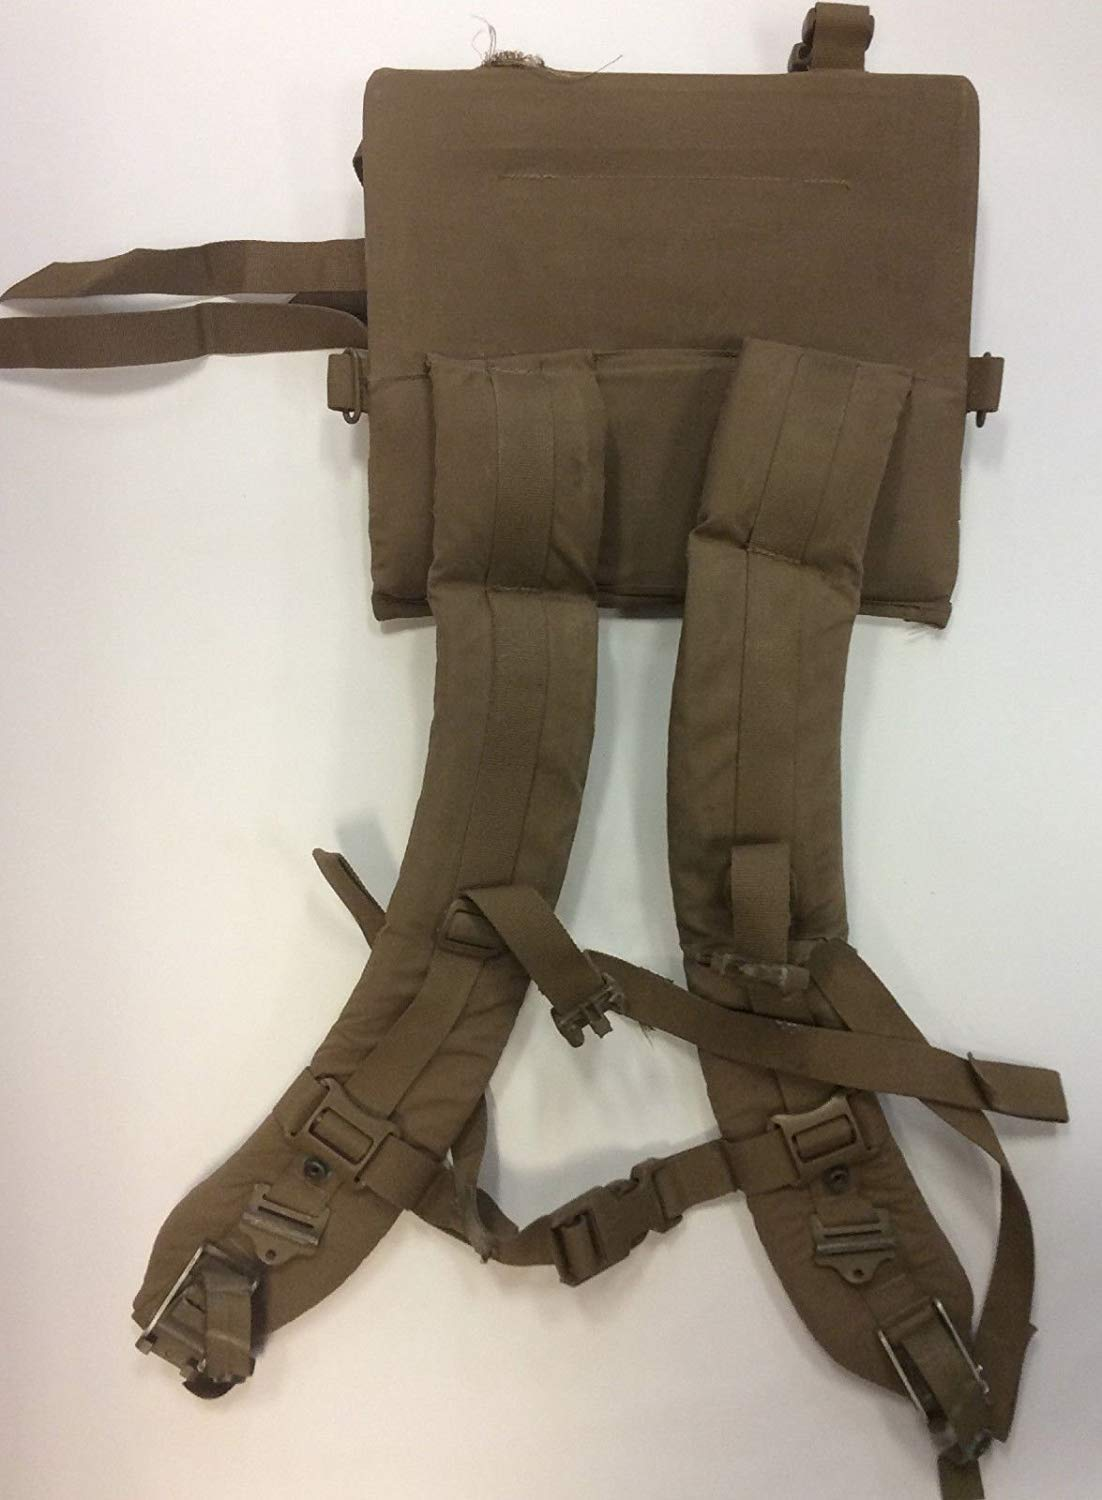 FILBE Main Pack Shoulder Straps USMC Coyote Brown Tan Harness Assembly GOOD